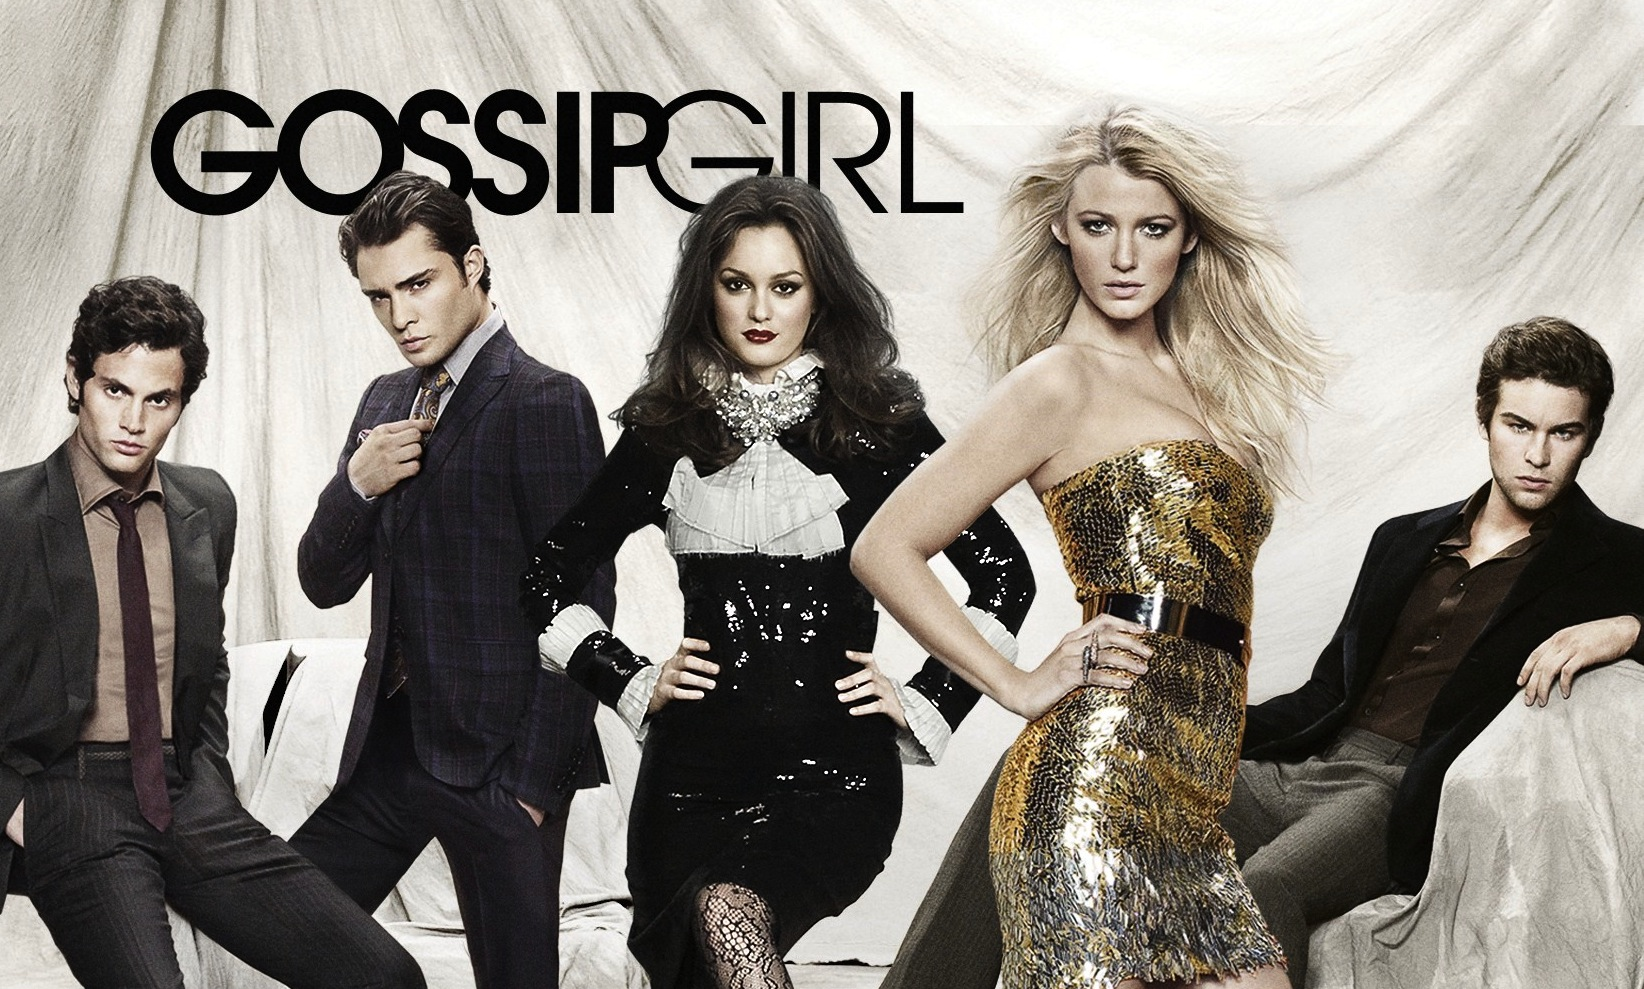 Gossip Girl Bs To